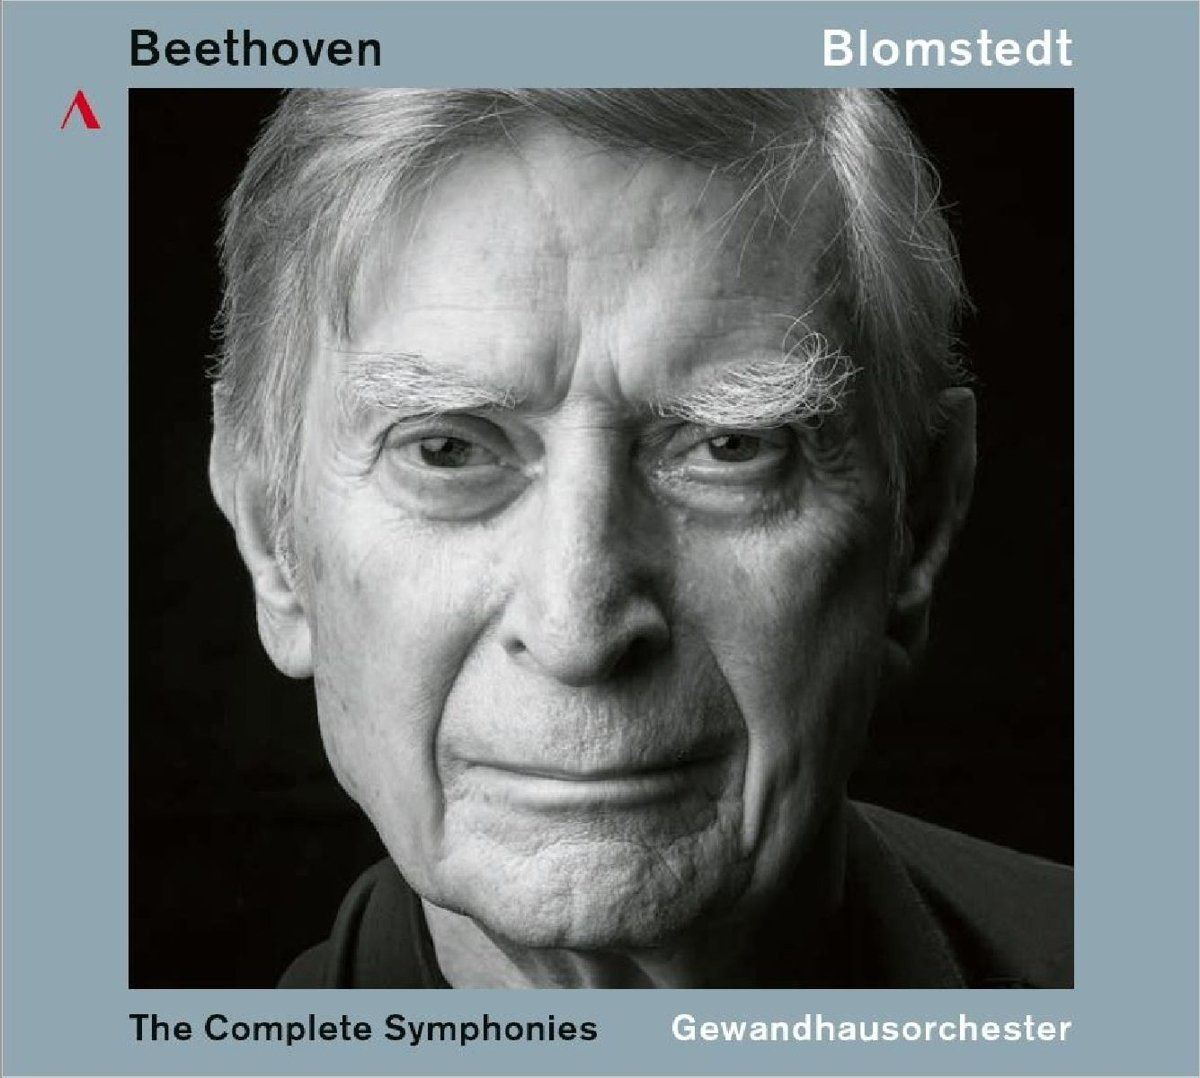 Herbert Blomstedt's Beethoven cycle